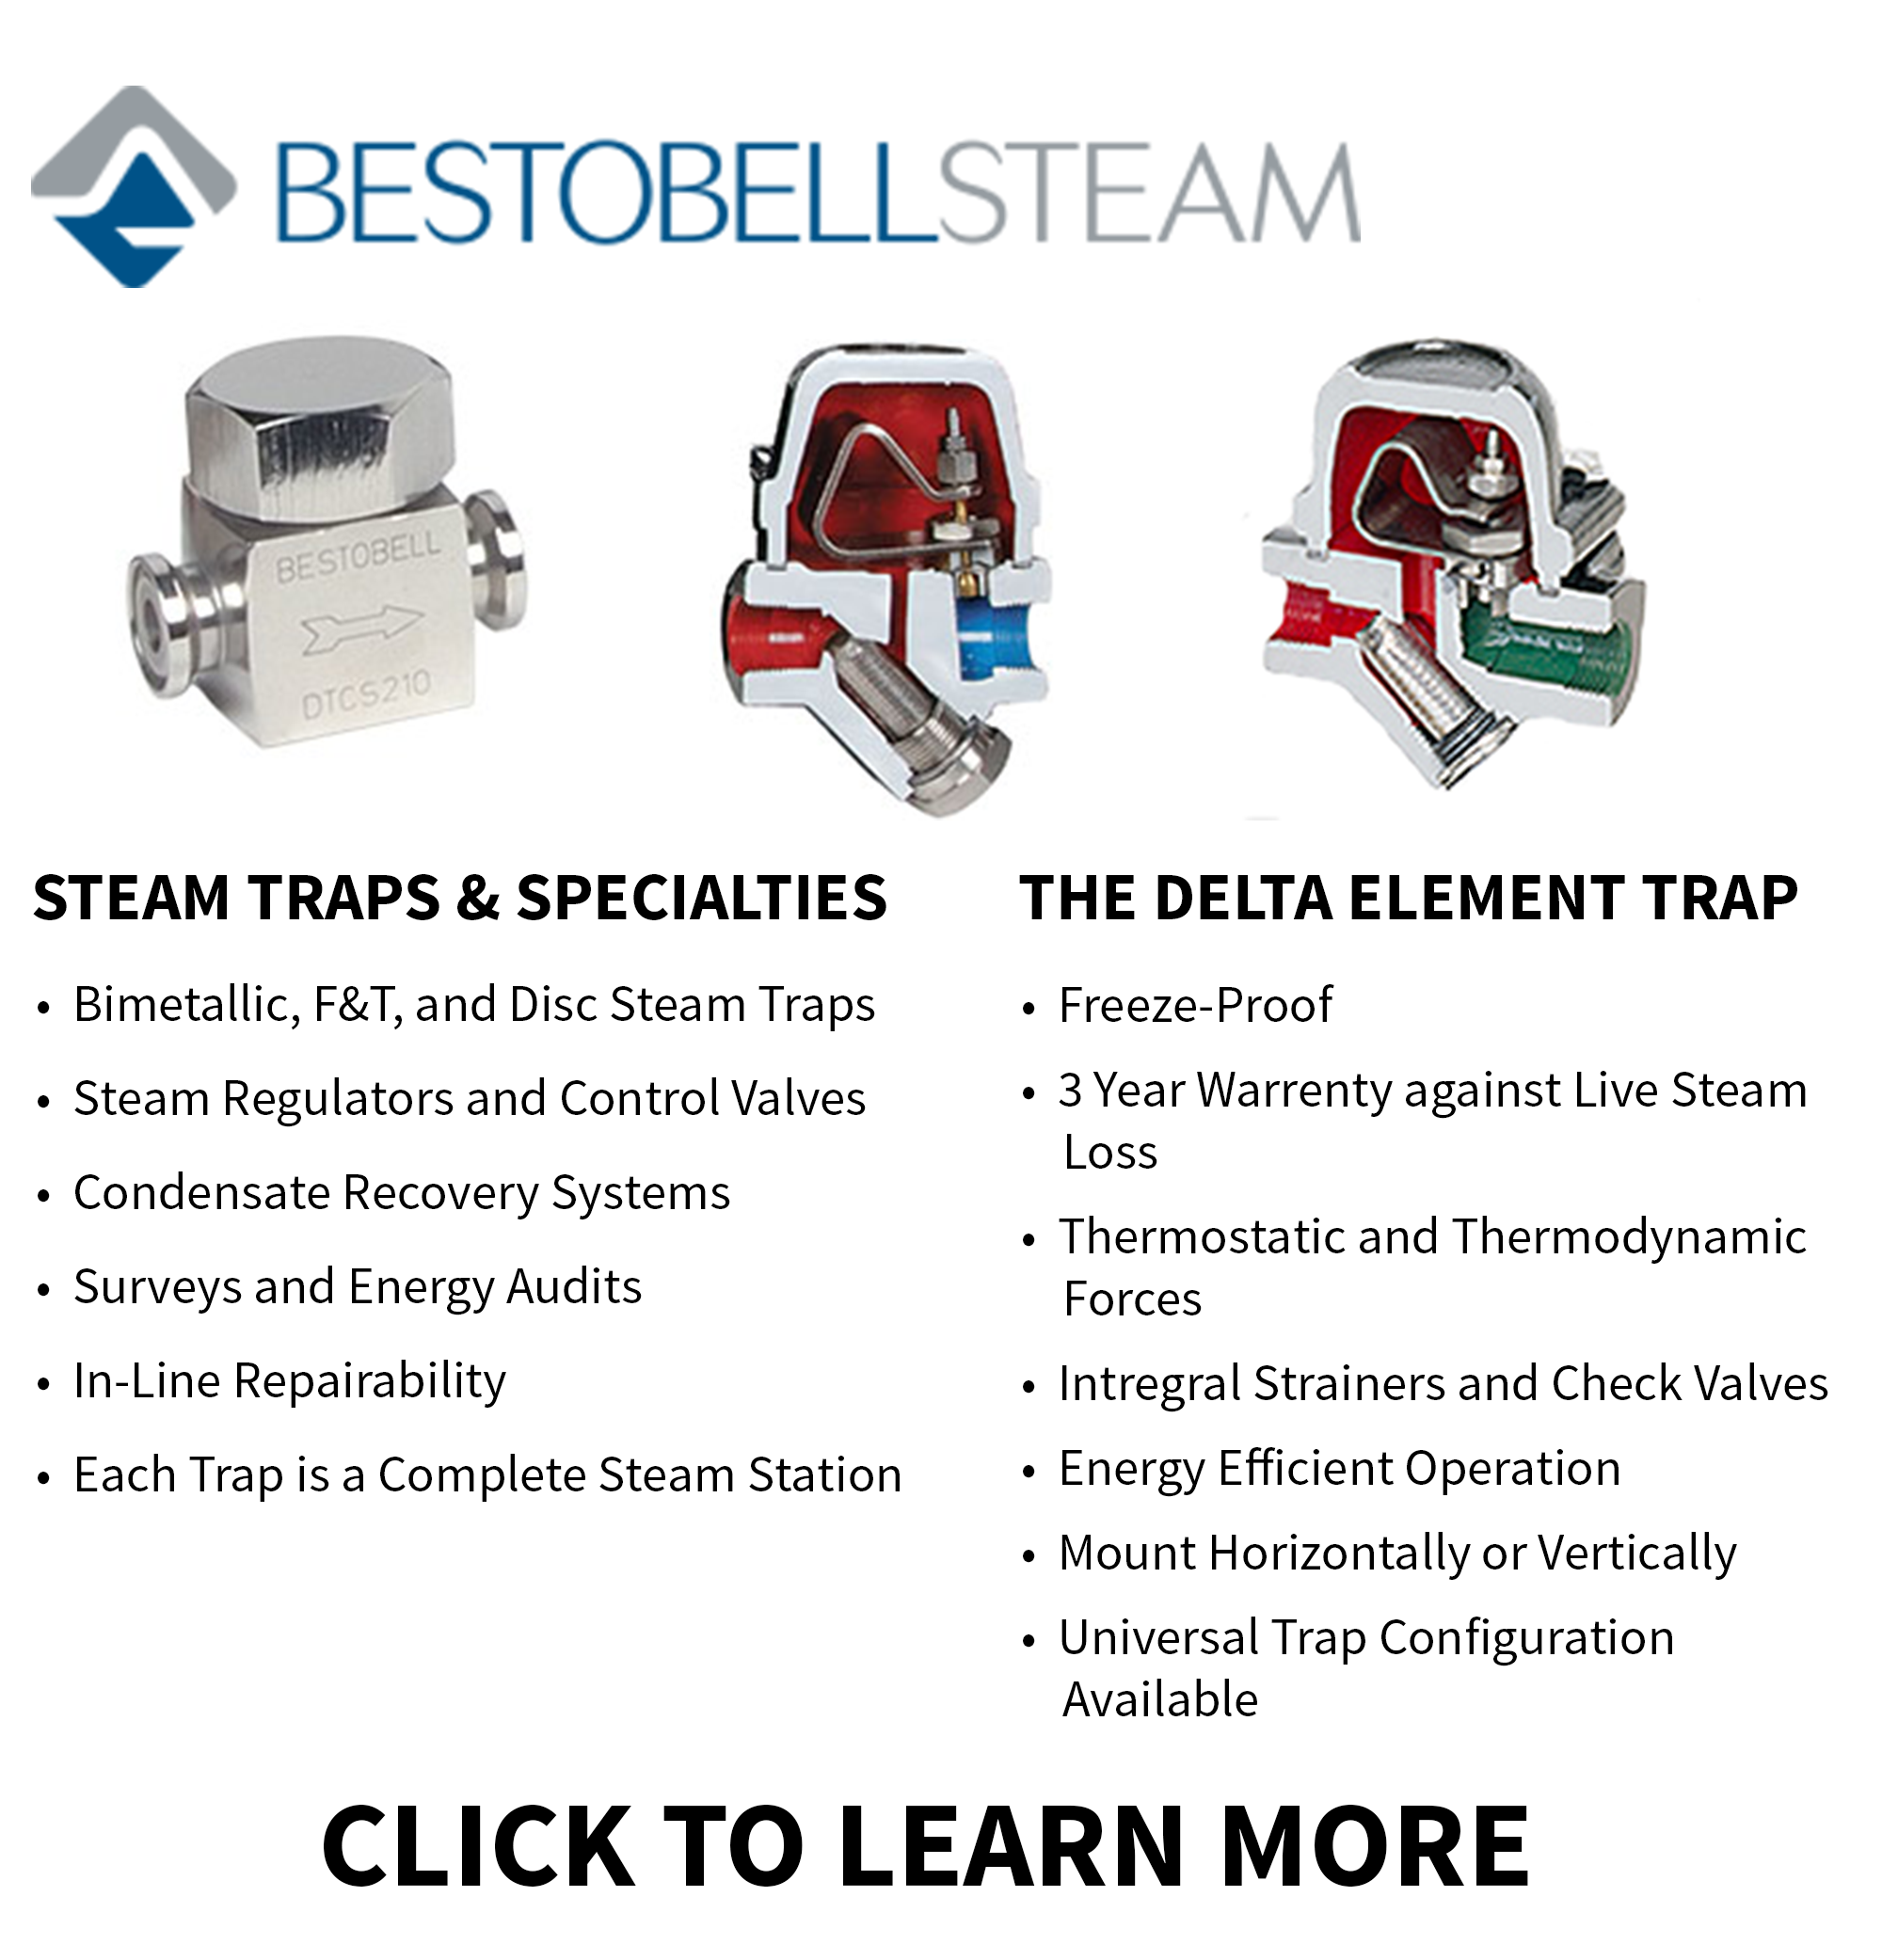 Ohio Valley Industrial Services- Bestobell Steam